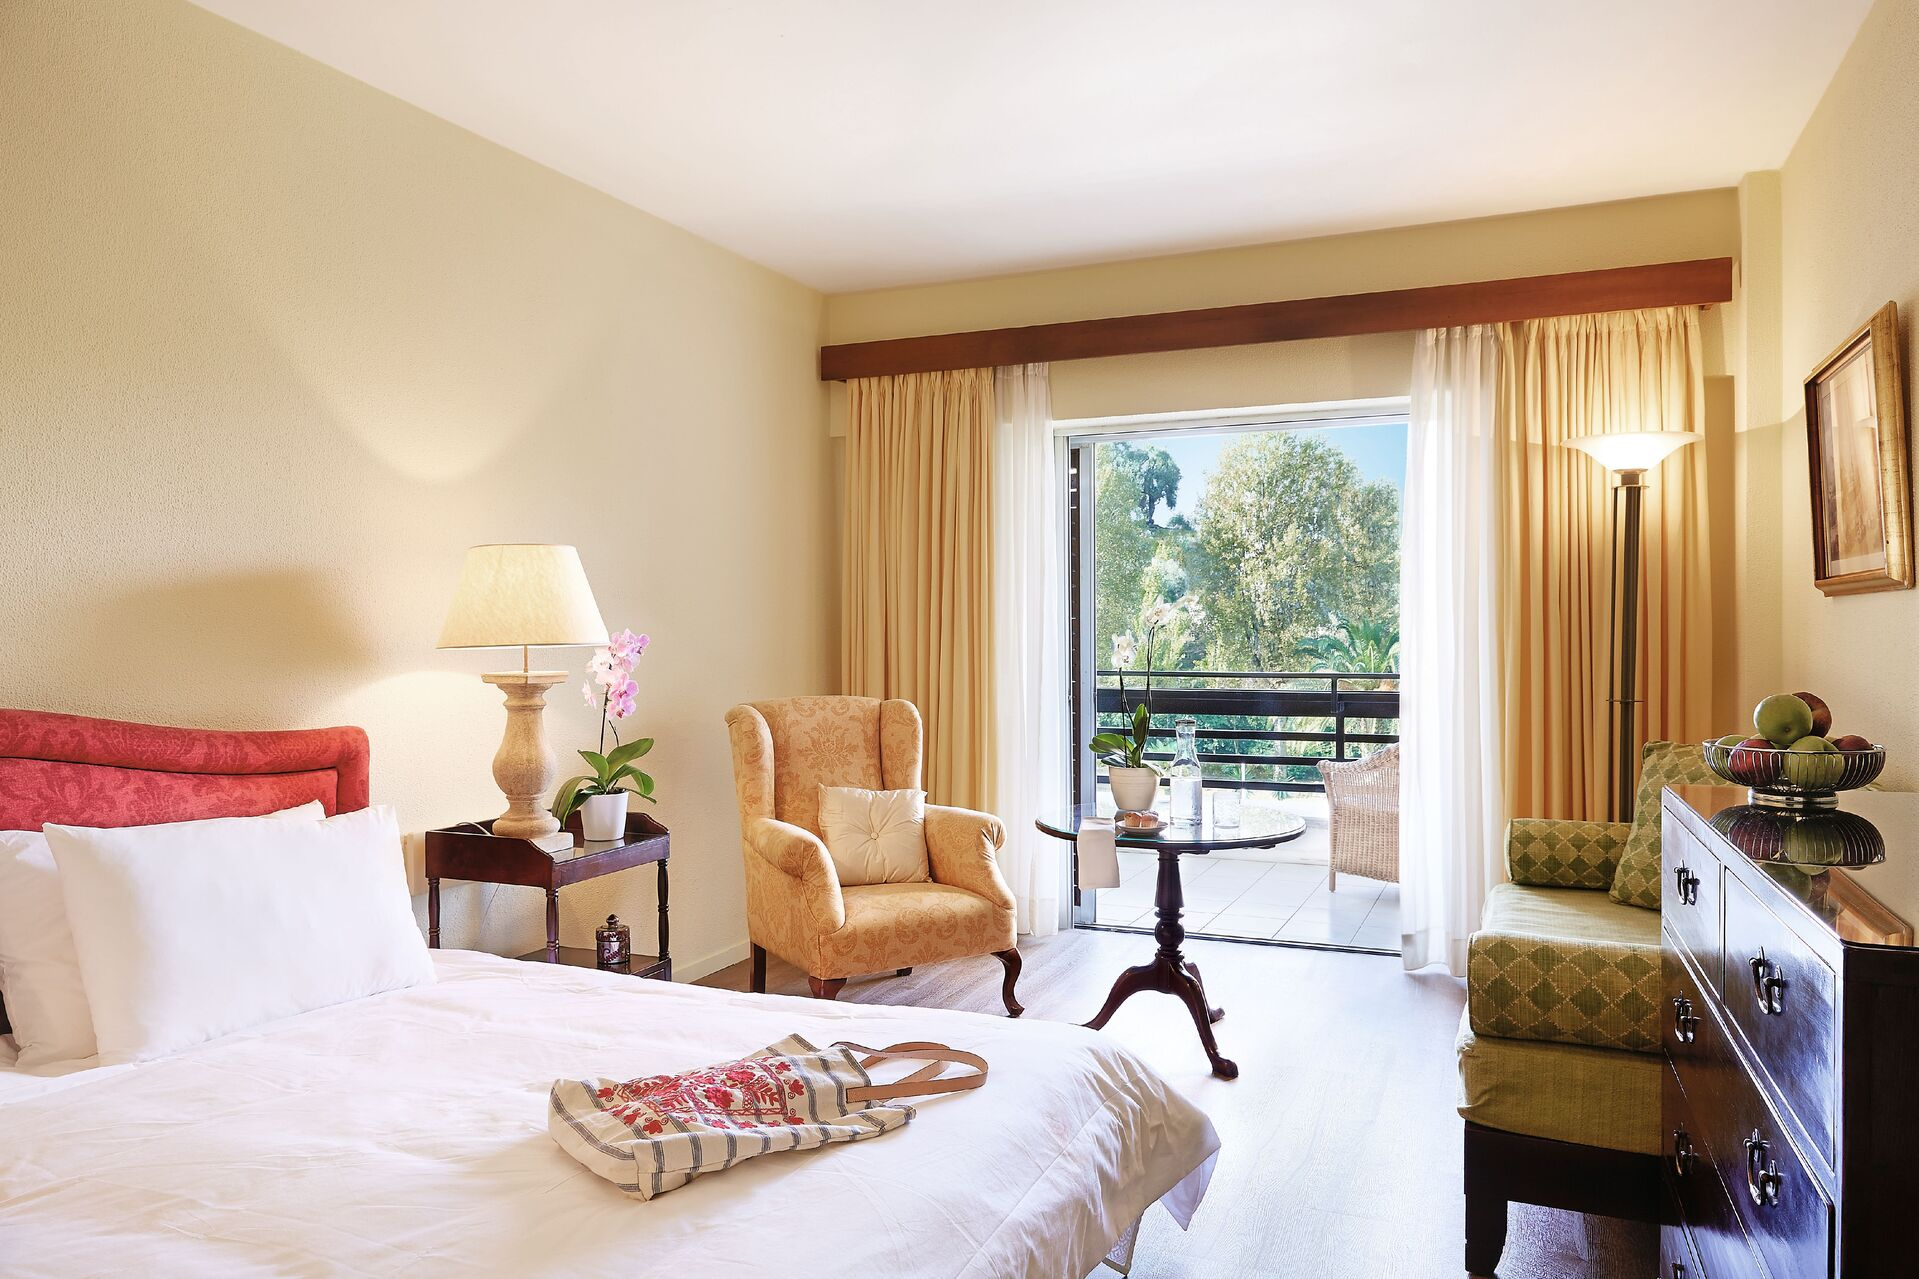 https://cms.satur.sk/data/imgs/tour_image/orig/24-superior-room-garden-view-and-private-balcony_72dpi-1924857.jpg